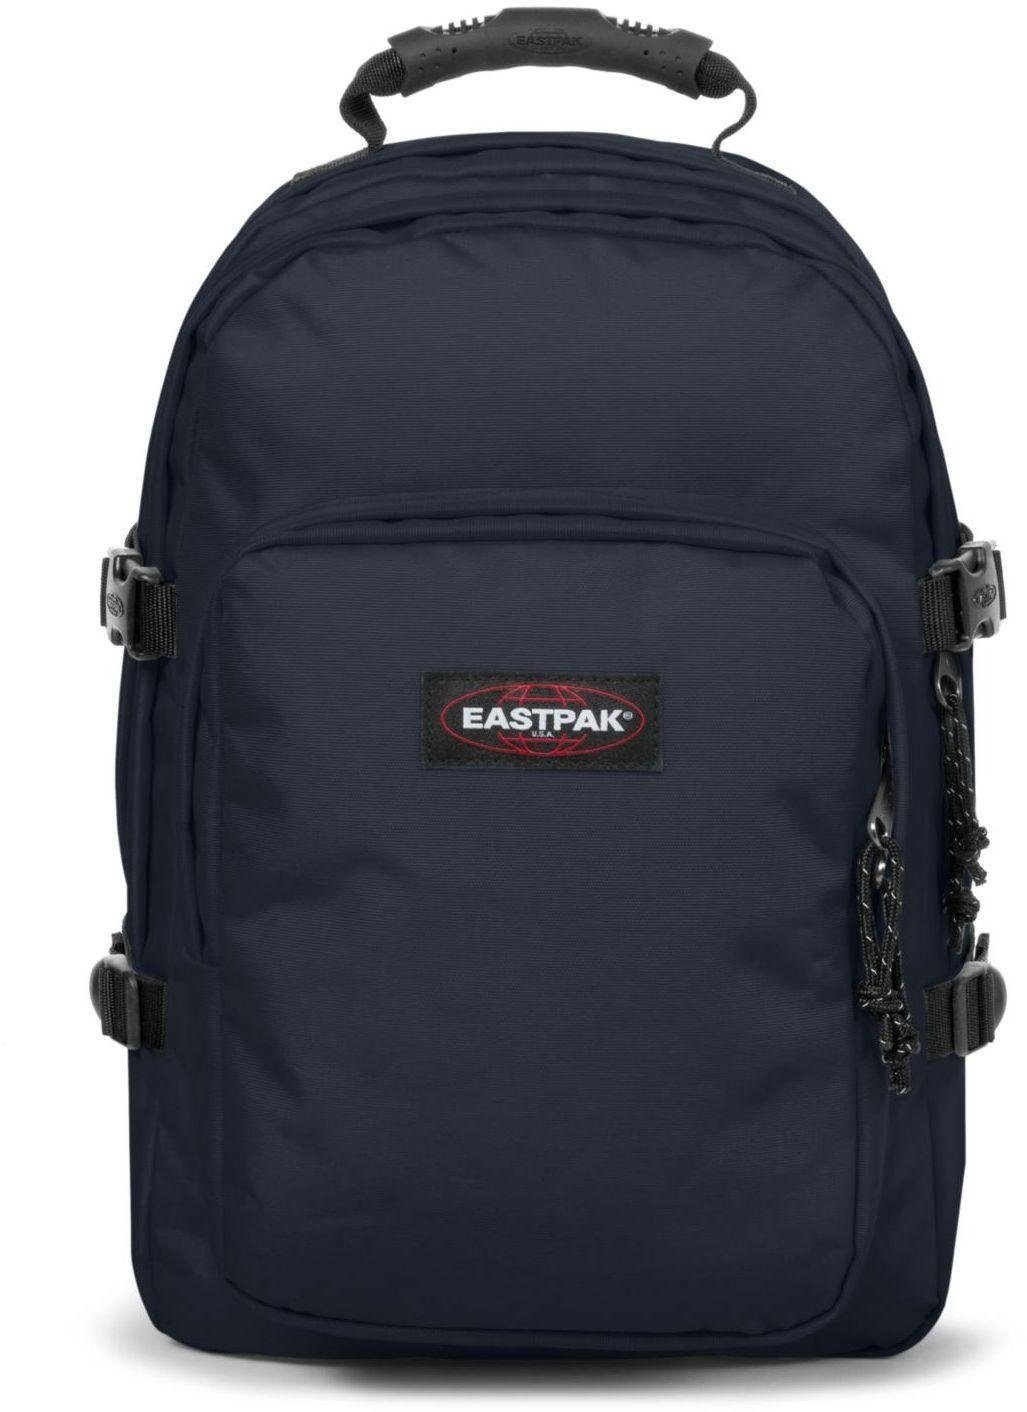 Eastpak Rucksack mit Laptopfach, »PROVIDER cloud navy«